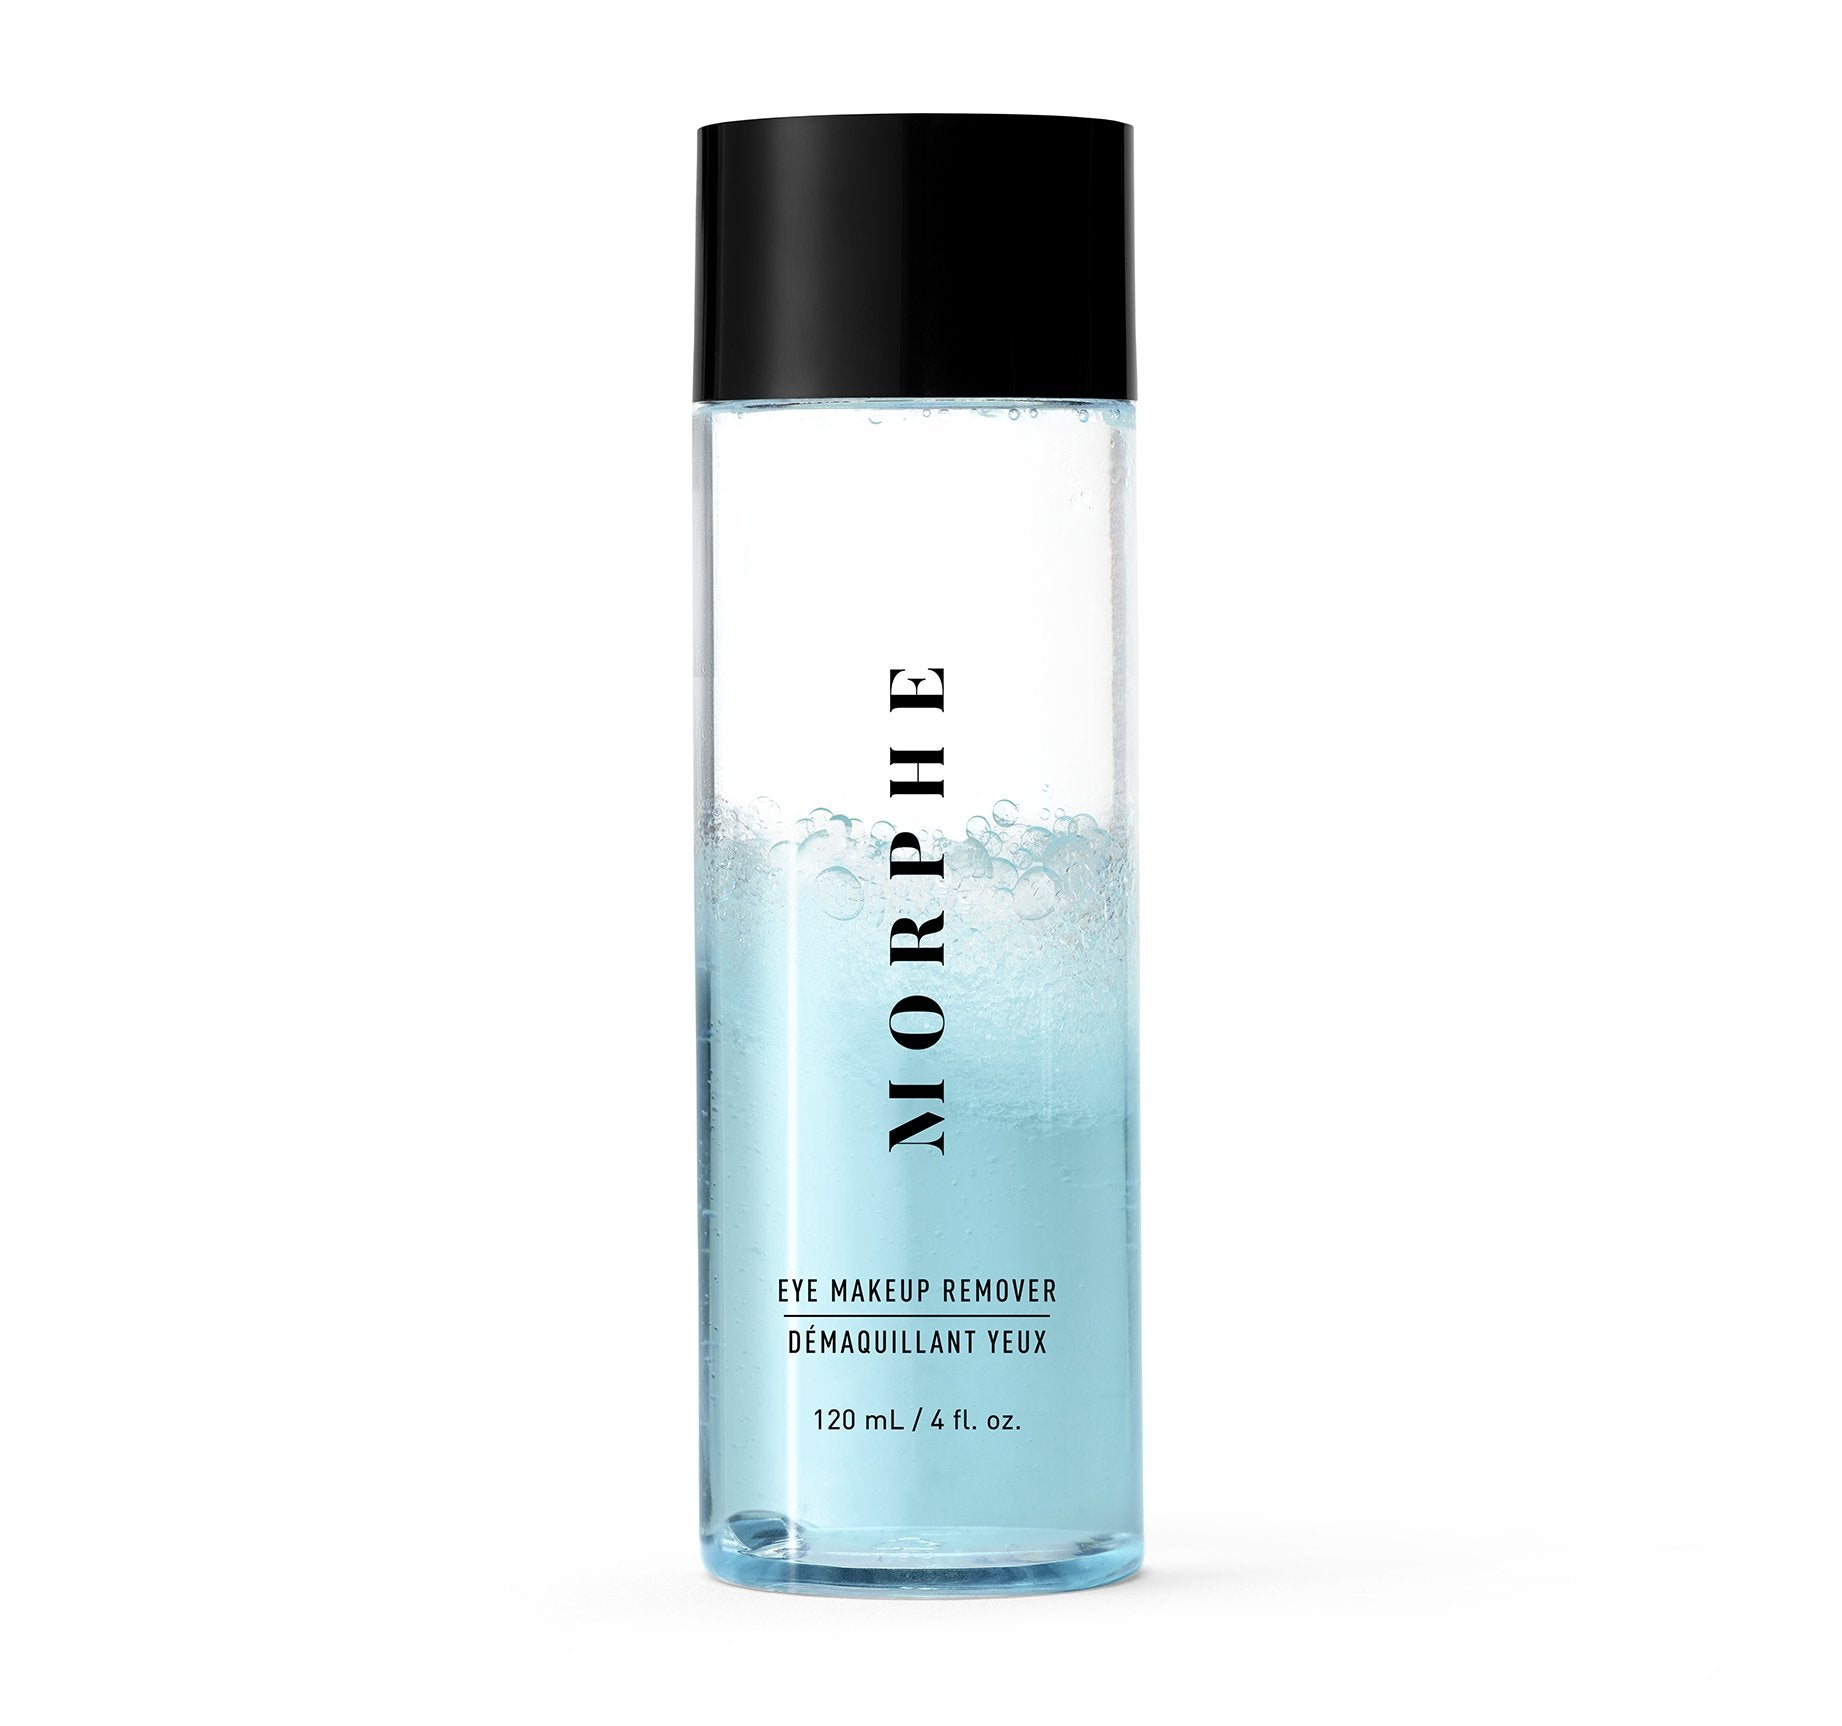 EYE MAKEUP REMOVER, view larger image